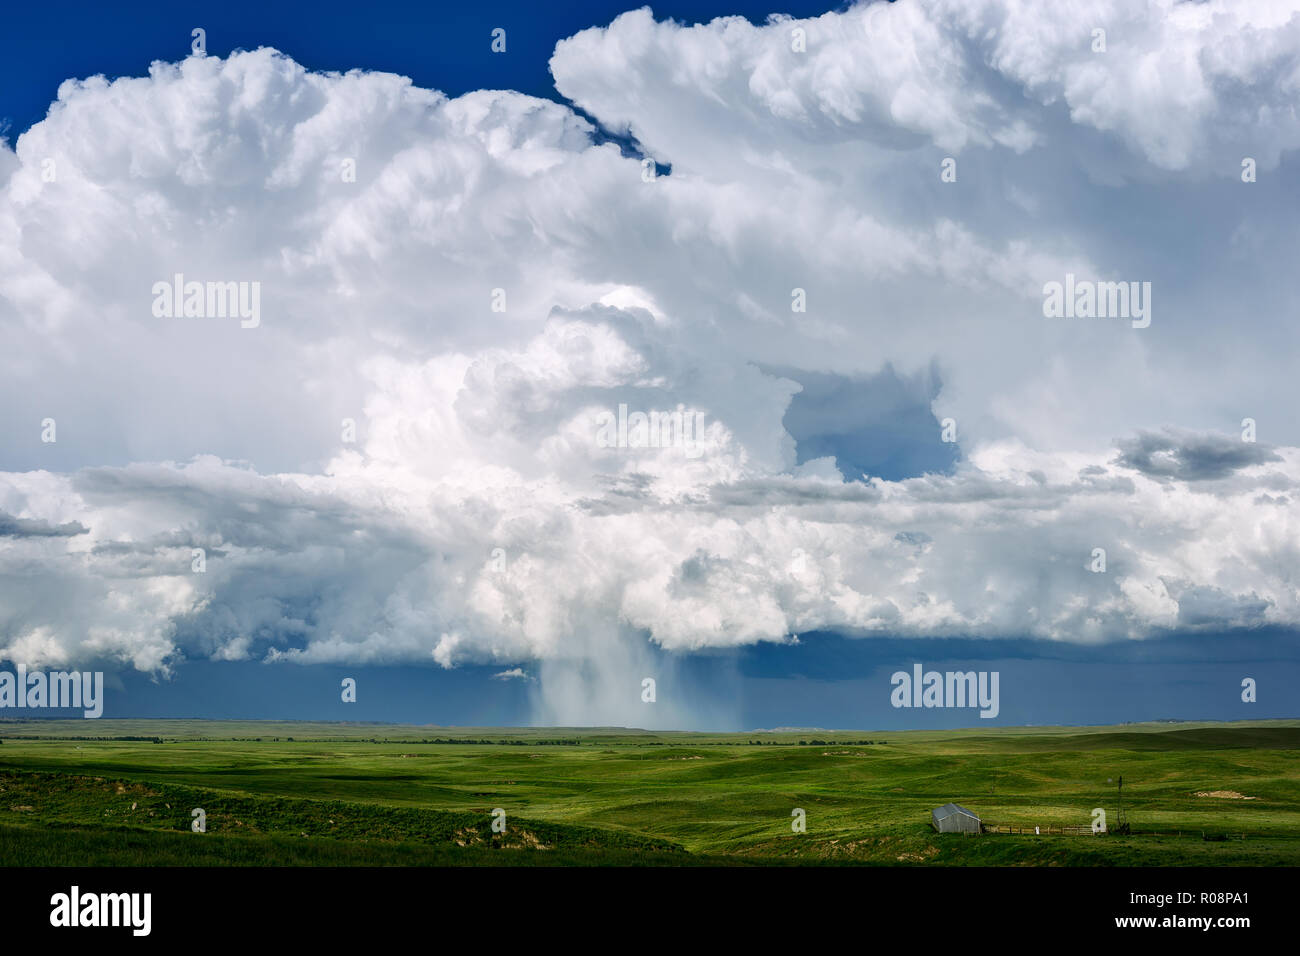 Cumulonimbus thunderstorm clouds over a green, grass landscape near Newcastle, Wyoming, USA. - Stock Image